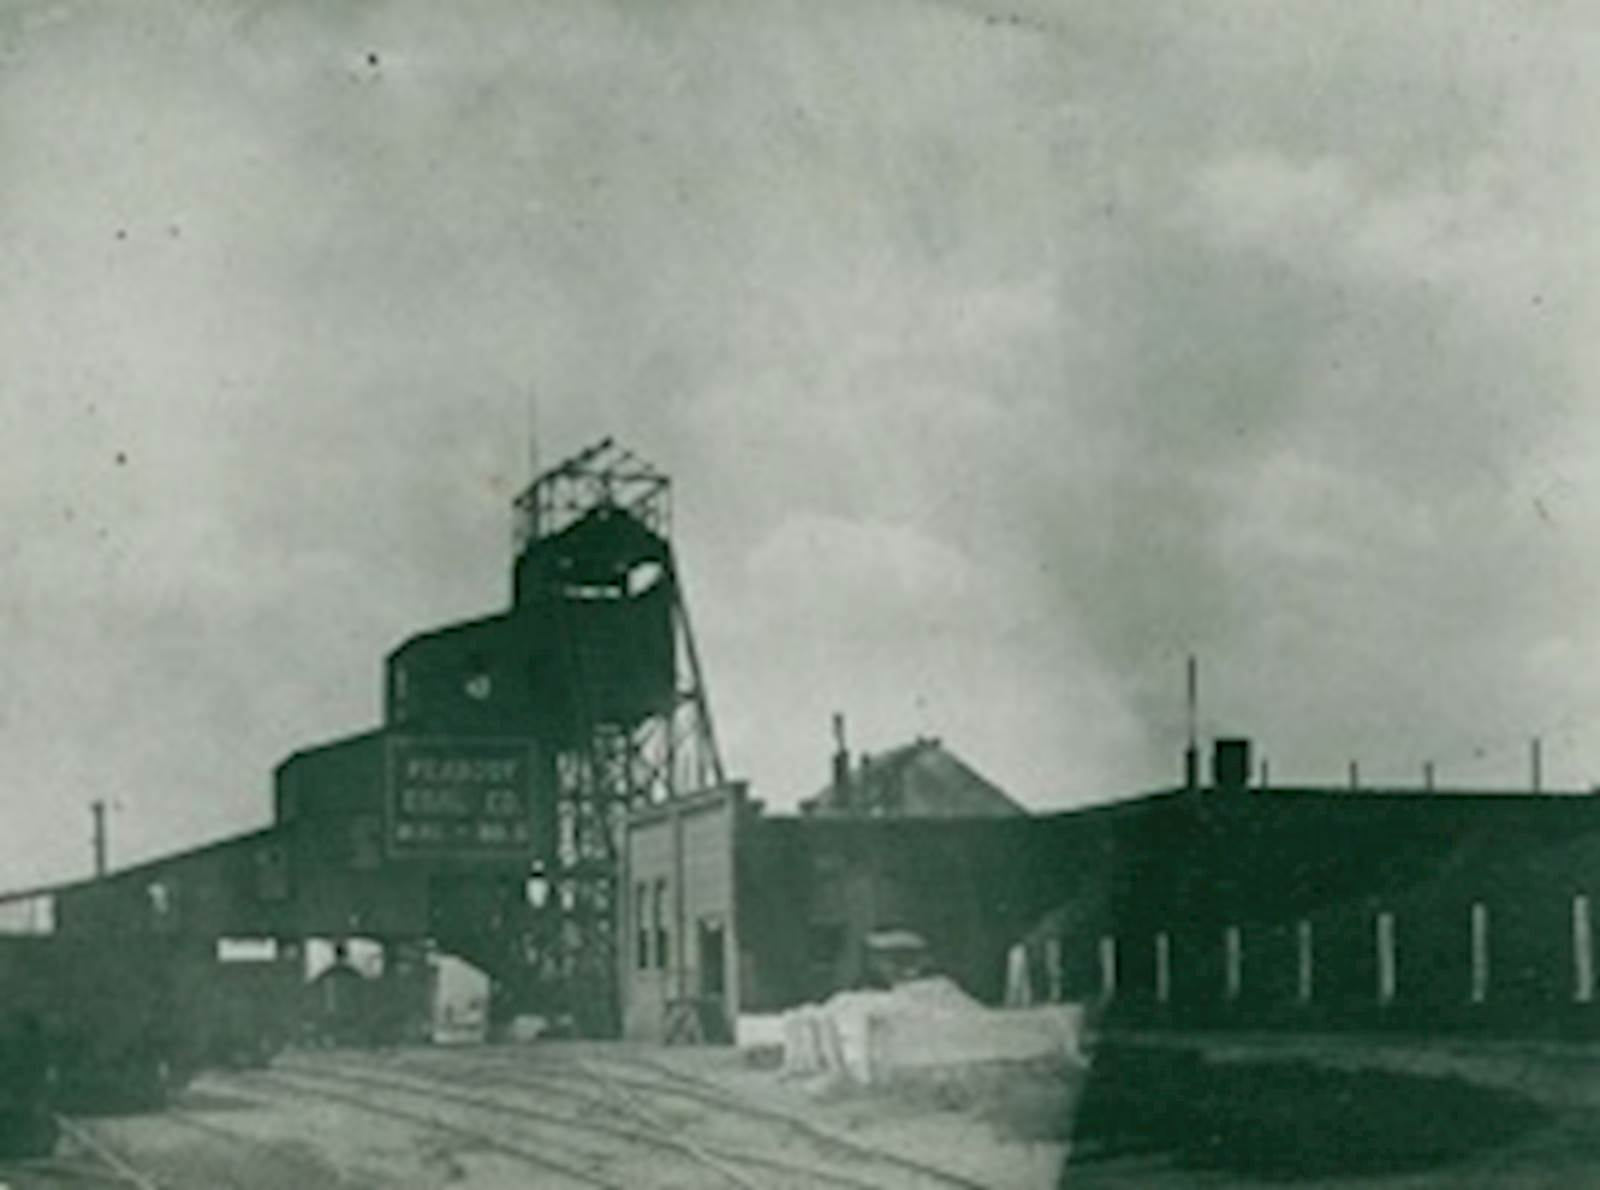 Peabody Coal Mine - Village of Sherman, Illinois - image